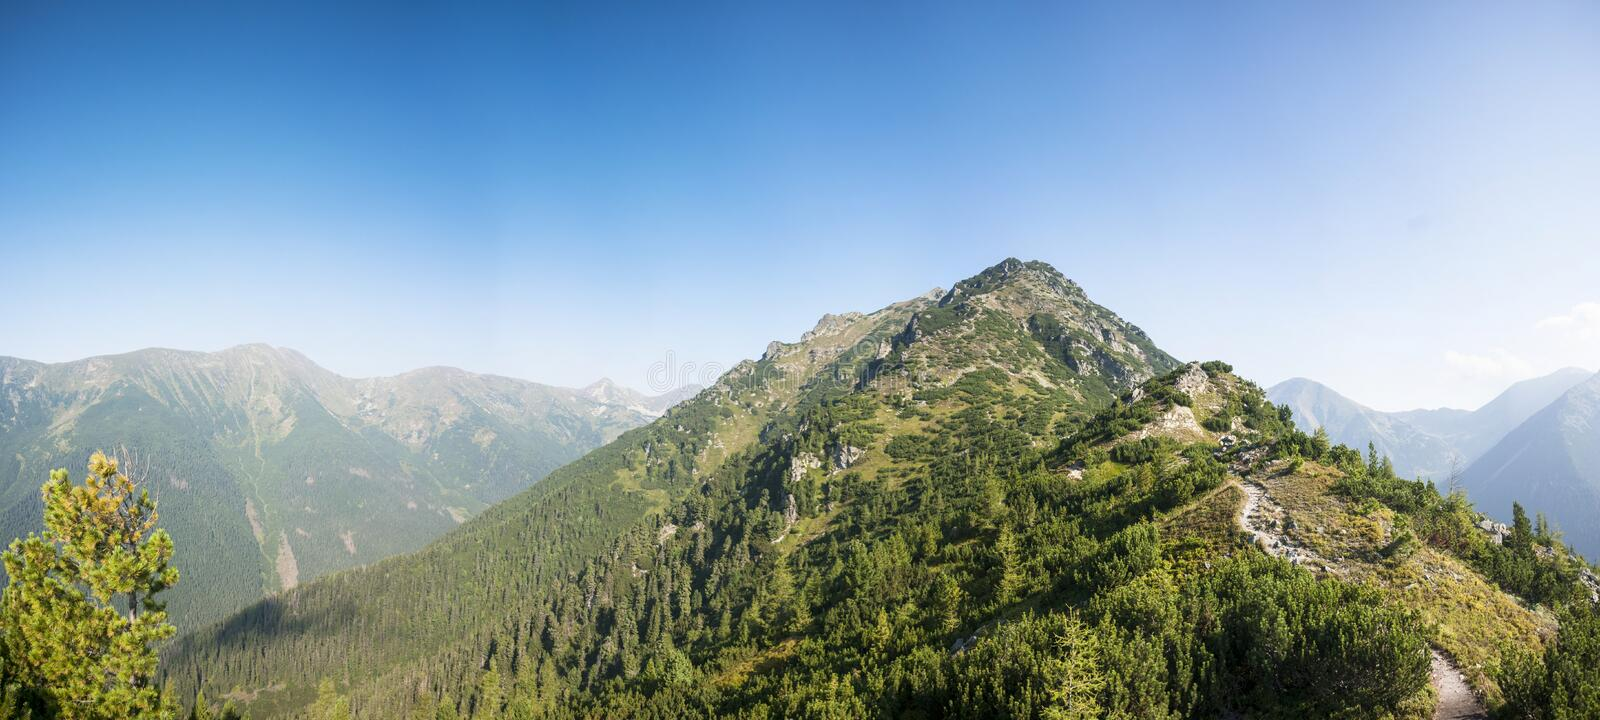 Mountain ridge with trees royalty free stock photography